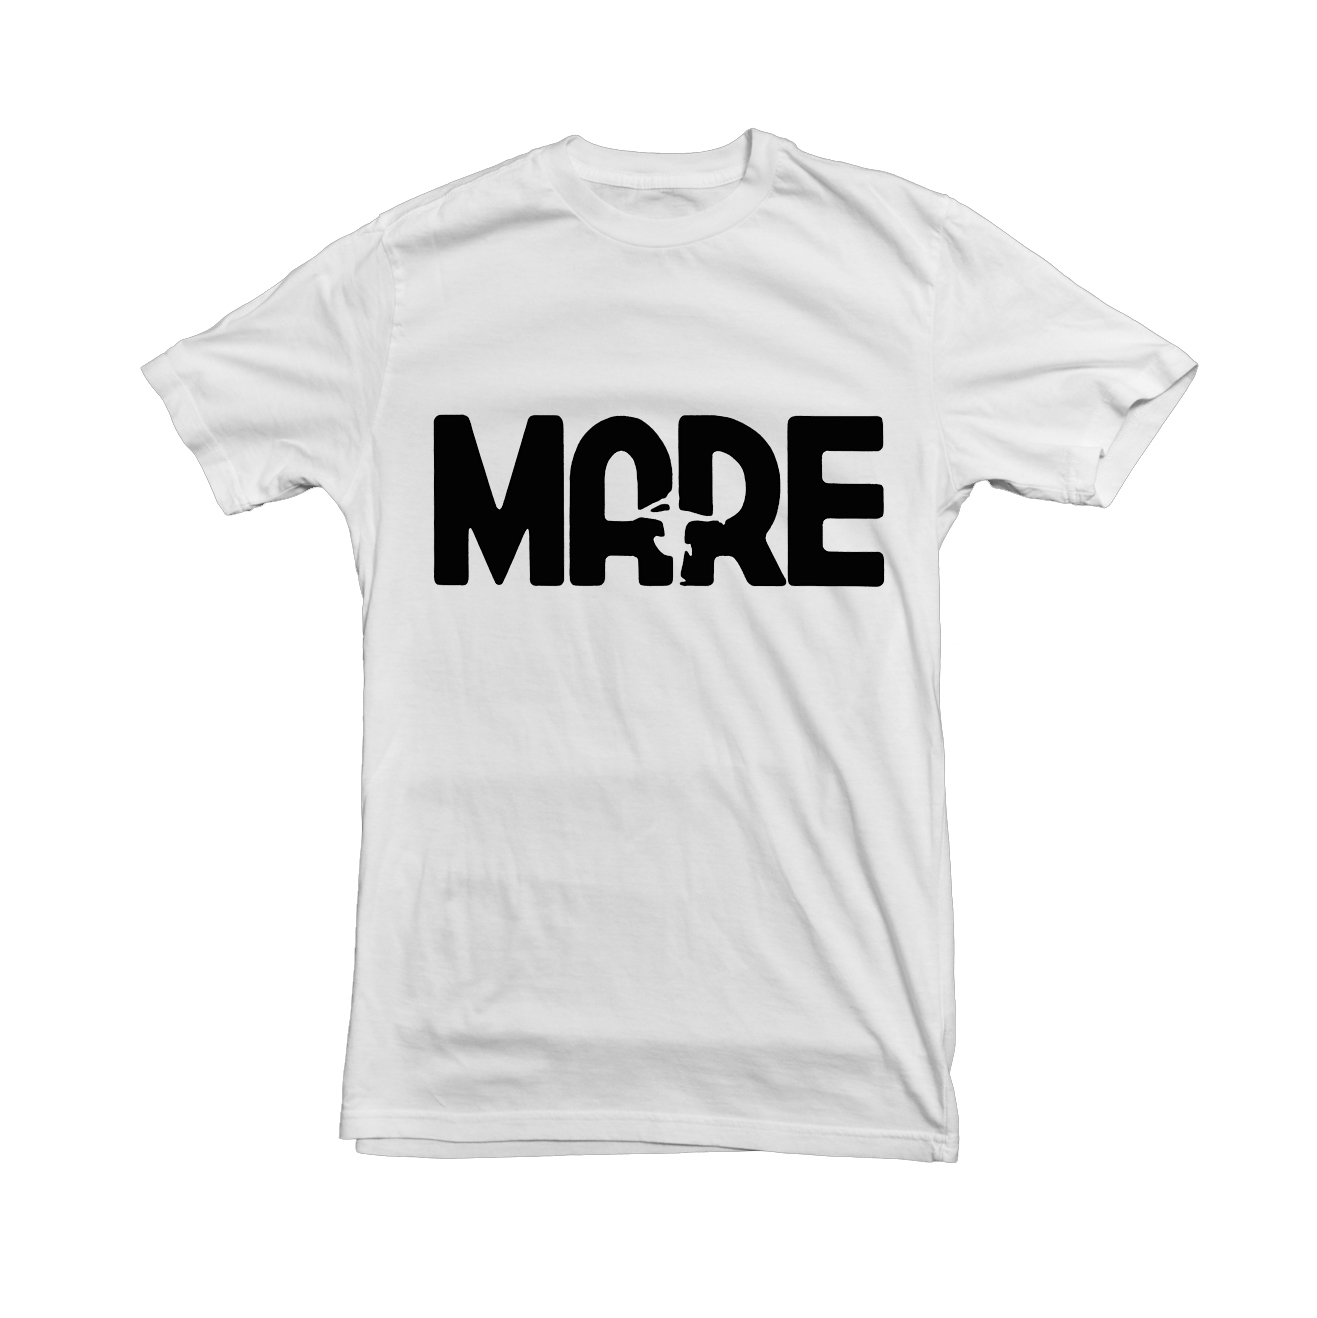 Mare - white logo shirt